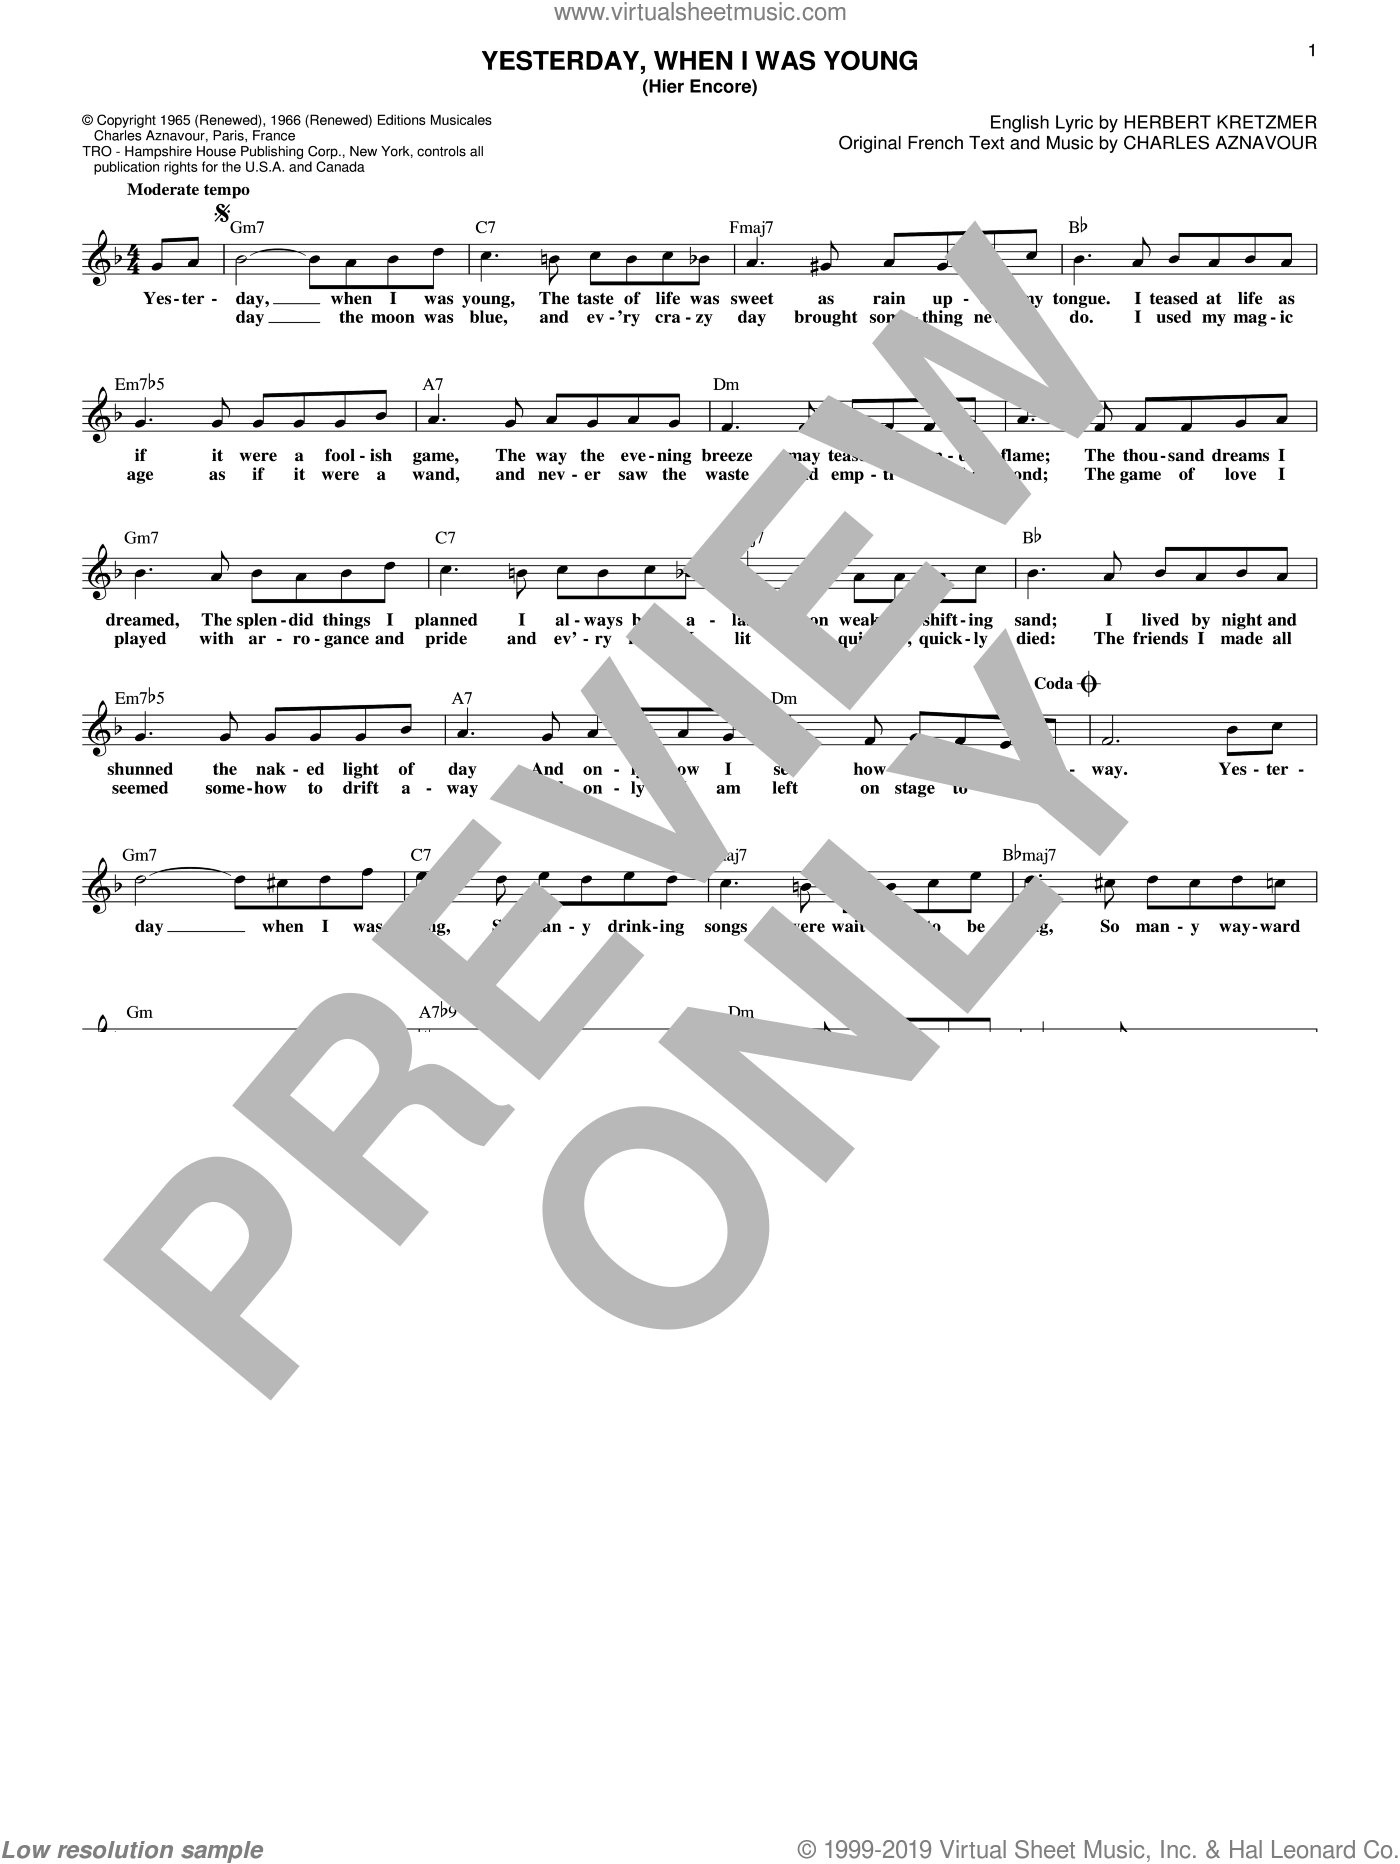 Yesterday, When I Was Young (Hier Encore) sheet music for voice and other instruments (fake book) by Roy Clark, Charles Aznavour and Herbert Kretzmer, intermediate skill level